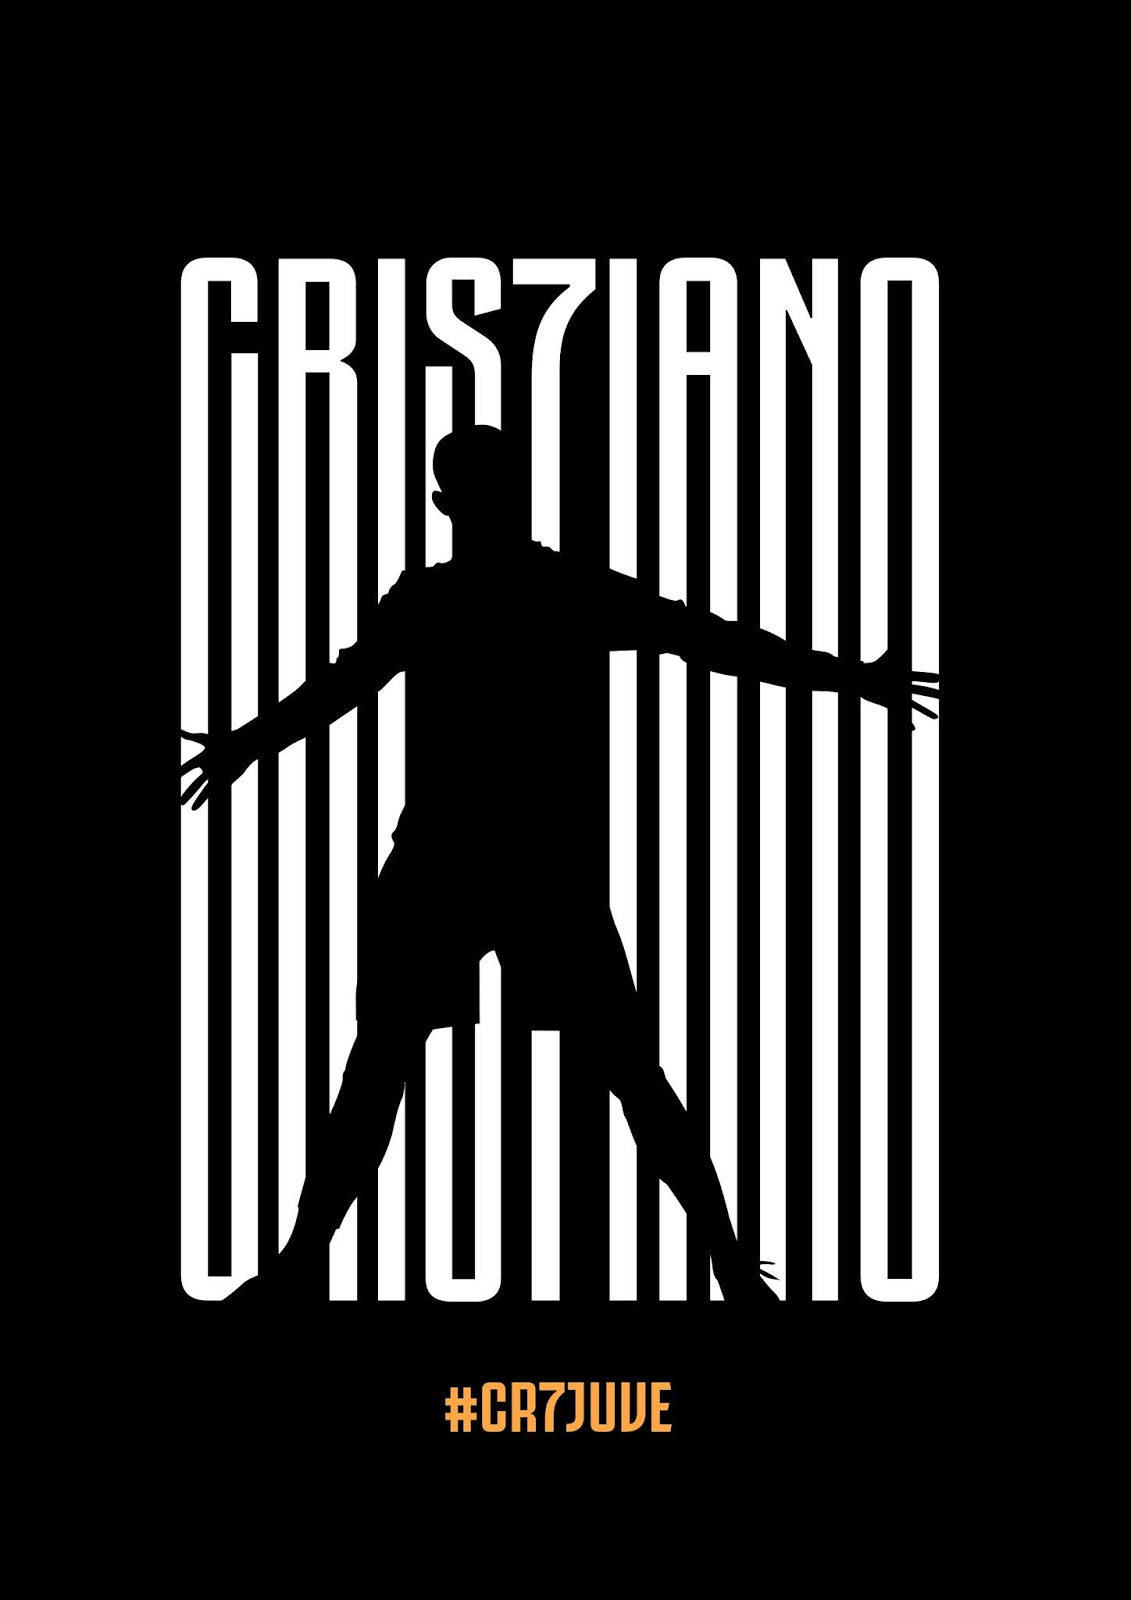 Free Download #CR7JUVE Style Poster Design - PSD FIle